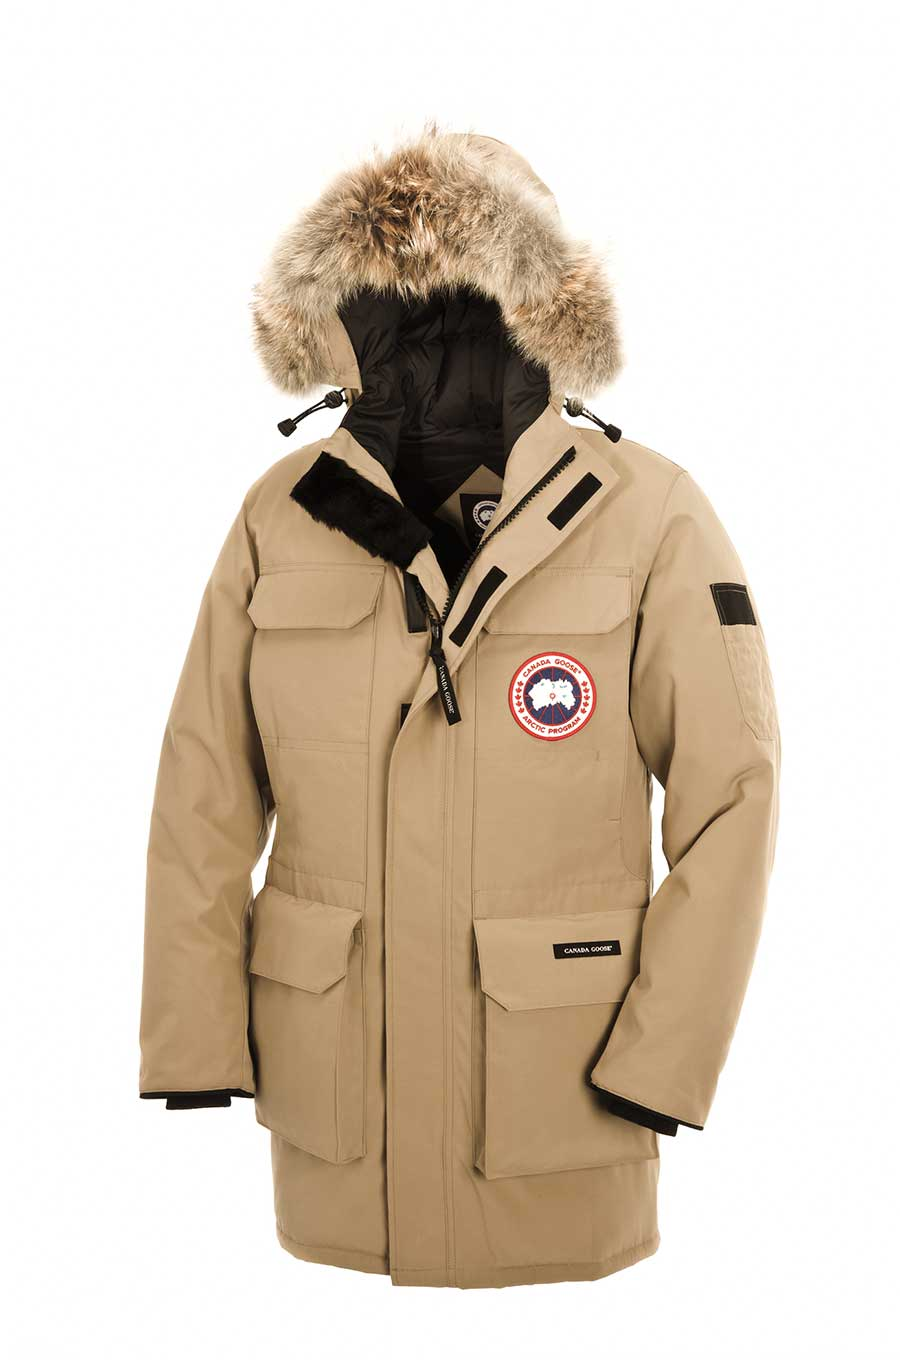 best winter jackets canada goose